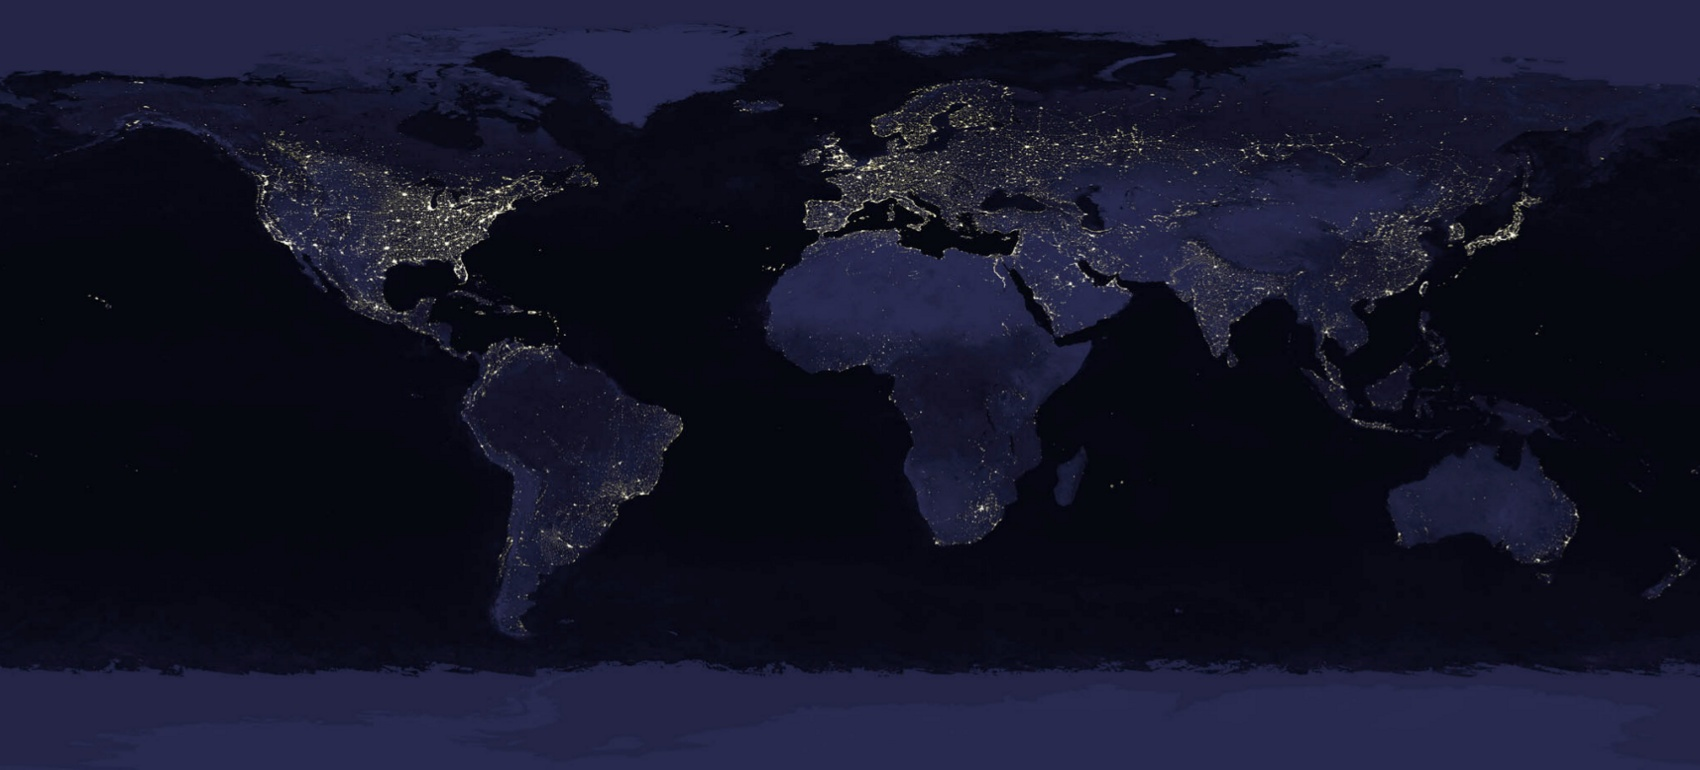 Colouring the earth activities unawe image of the earth at night image 5 gumiabroncs Choice Image